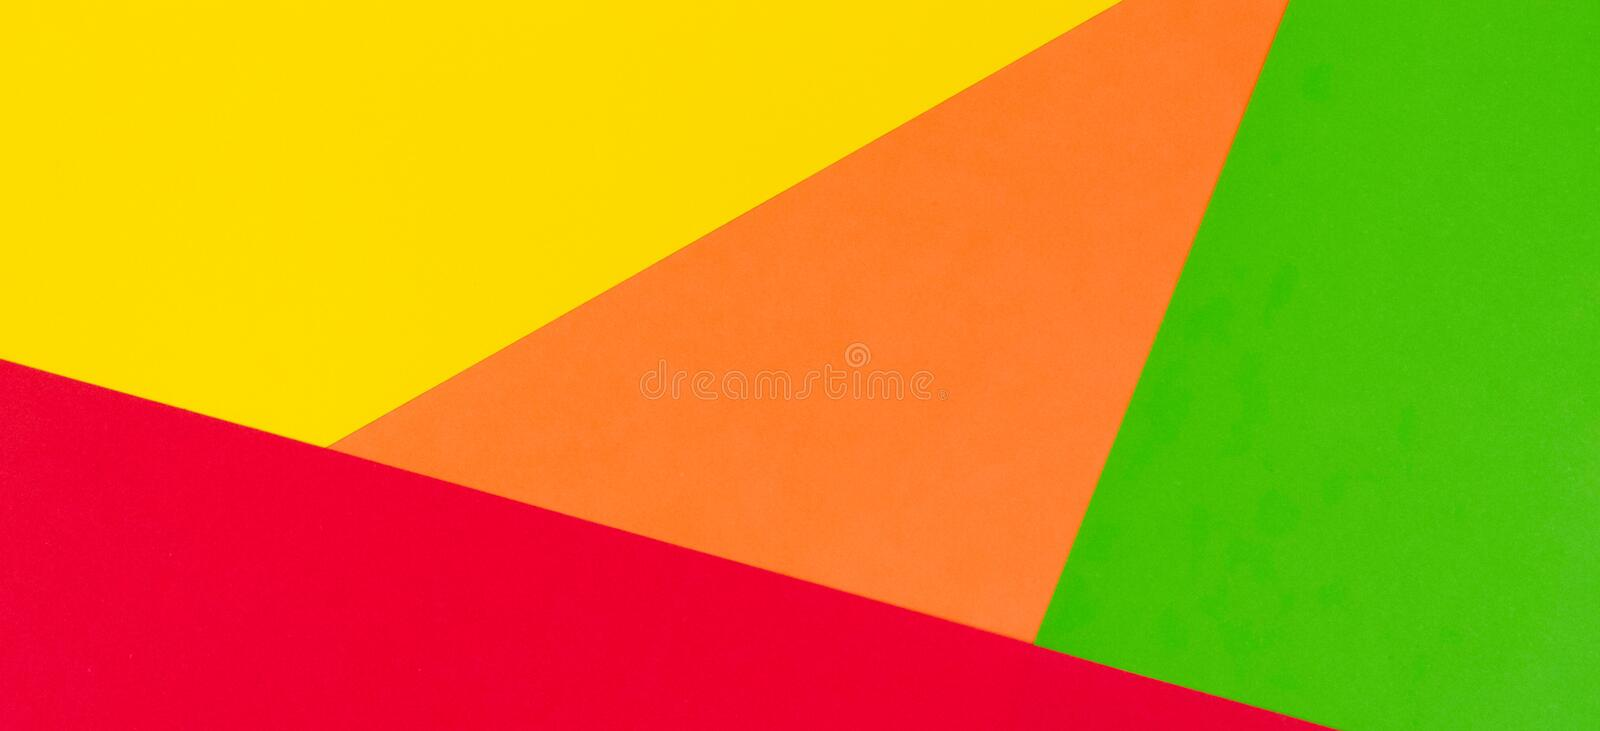 Yellow, red, green and orange color paper banner background royalty free stock images